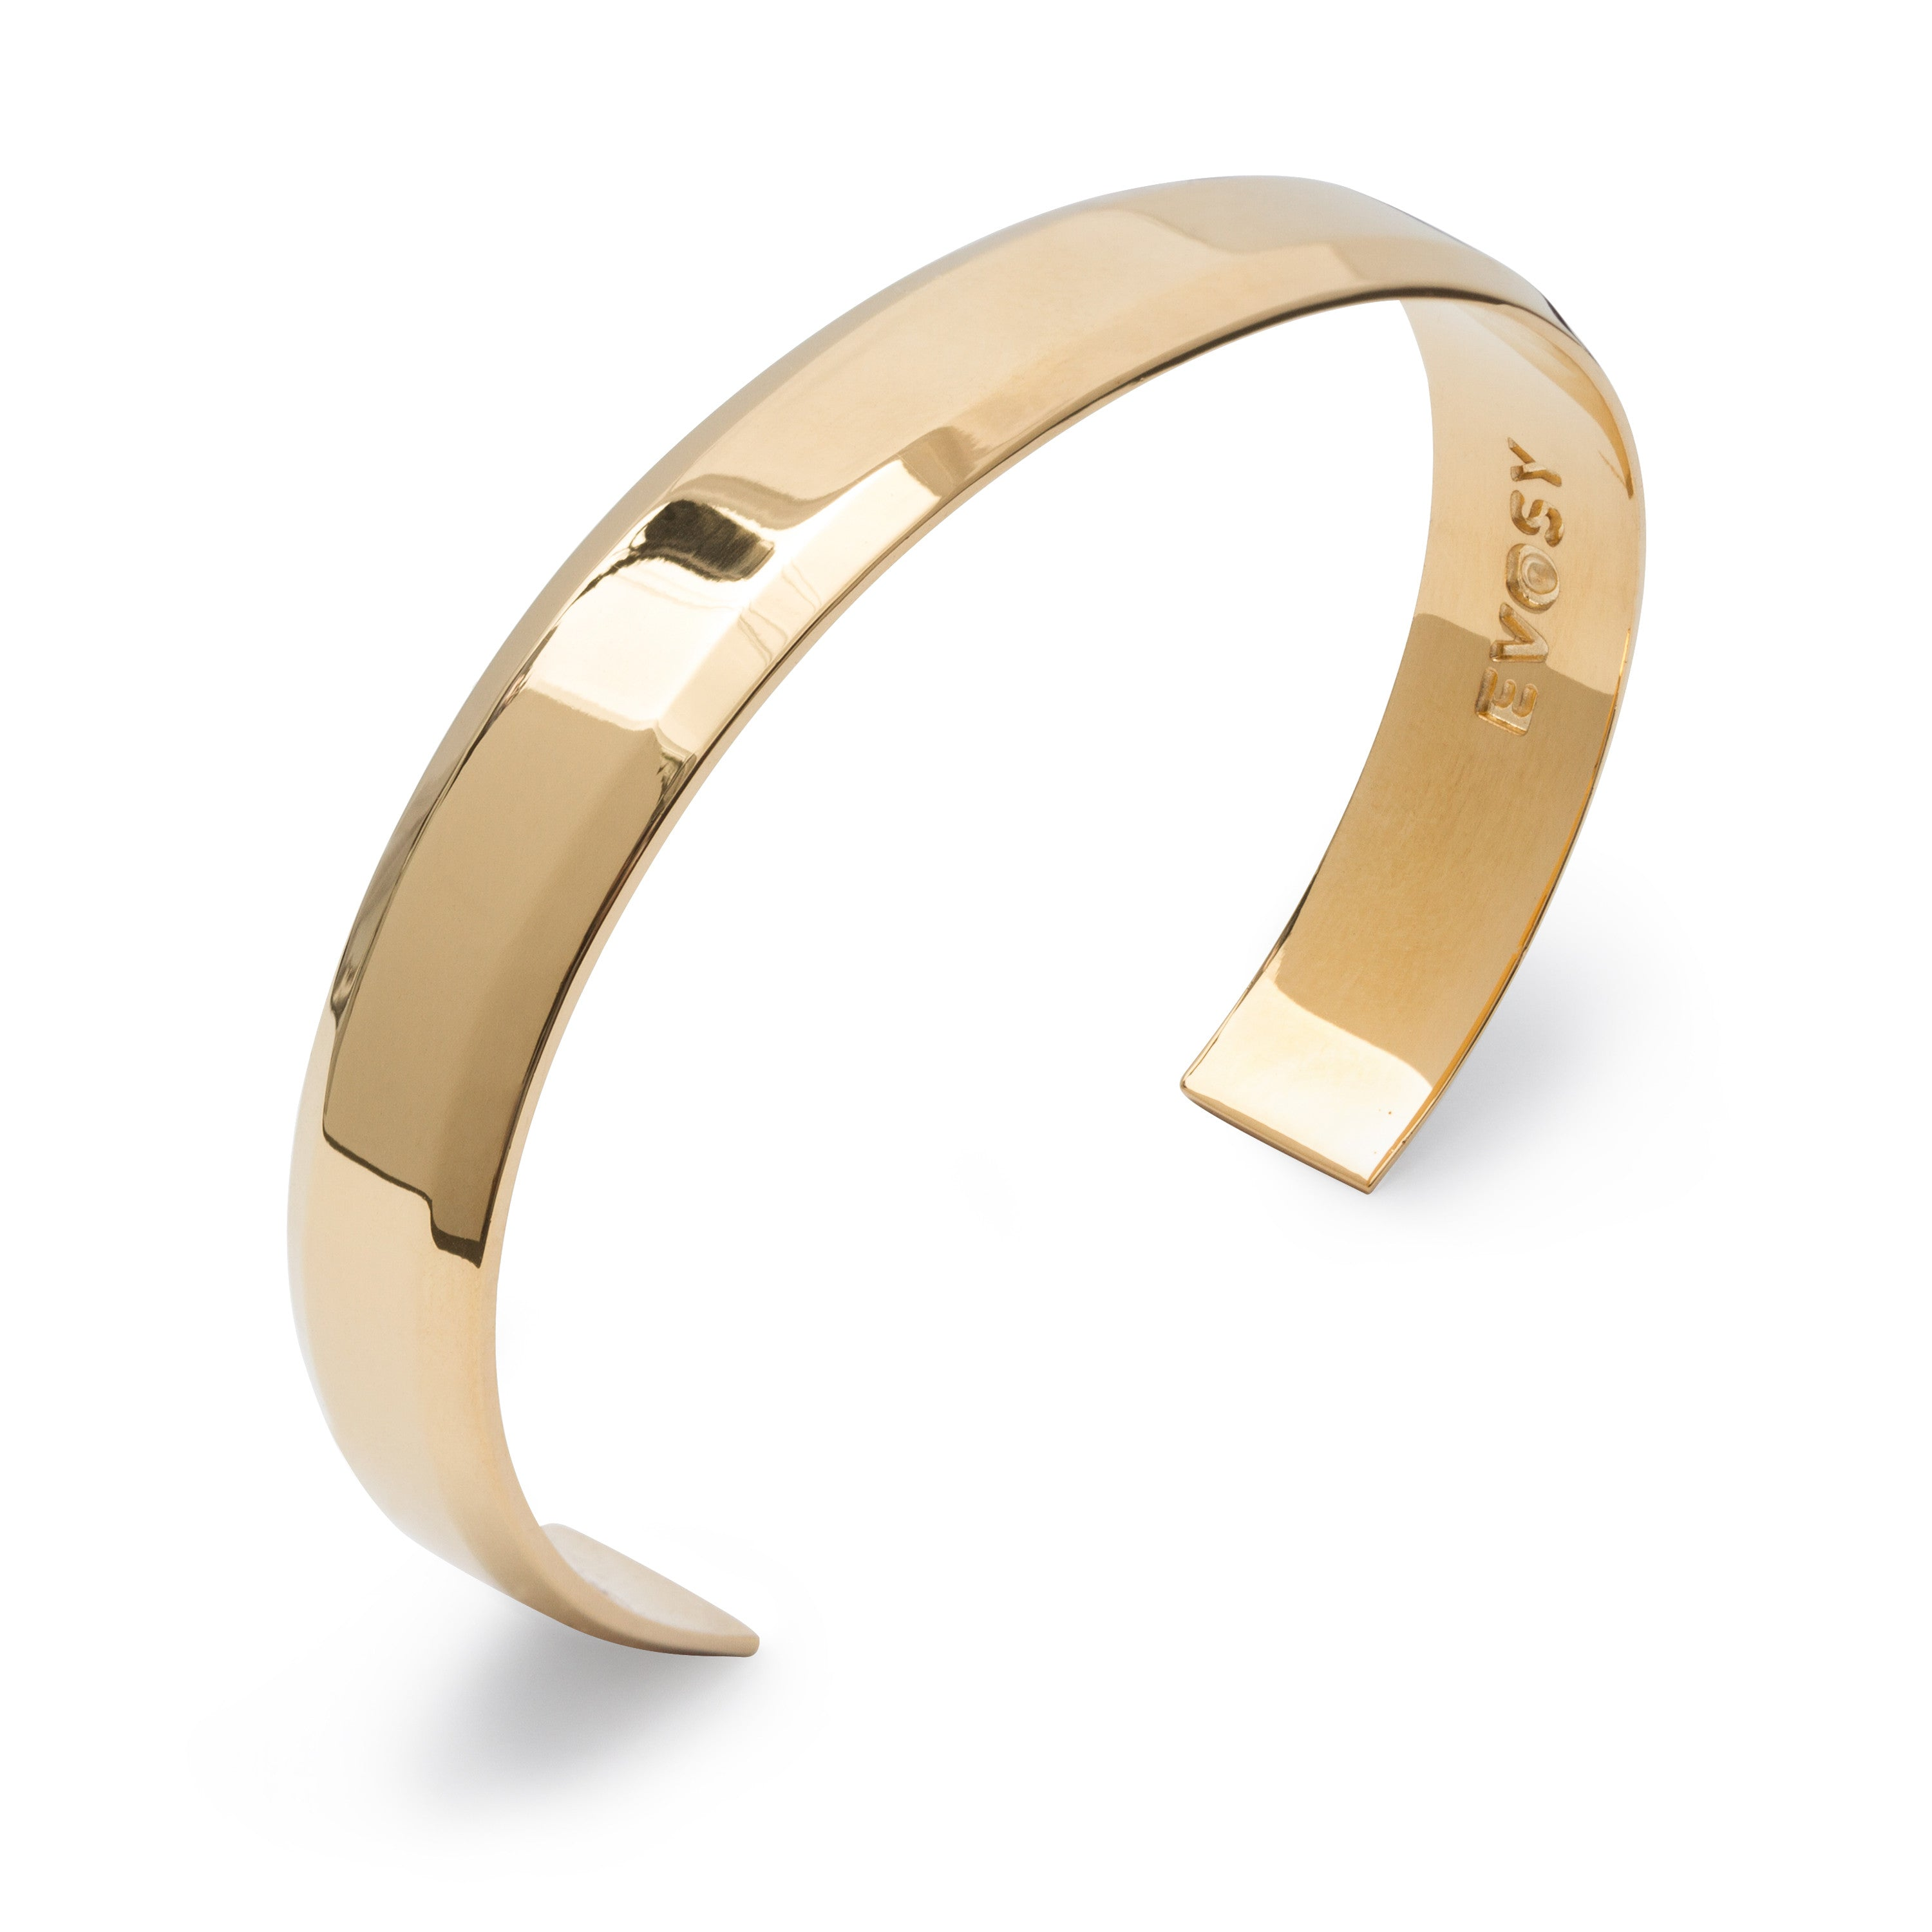 Modern Minimalist Wide Cuff Bracelet in Solid Sterling Silver with 18k Gold Plating